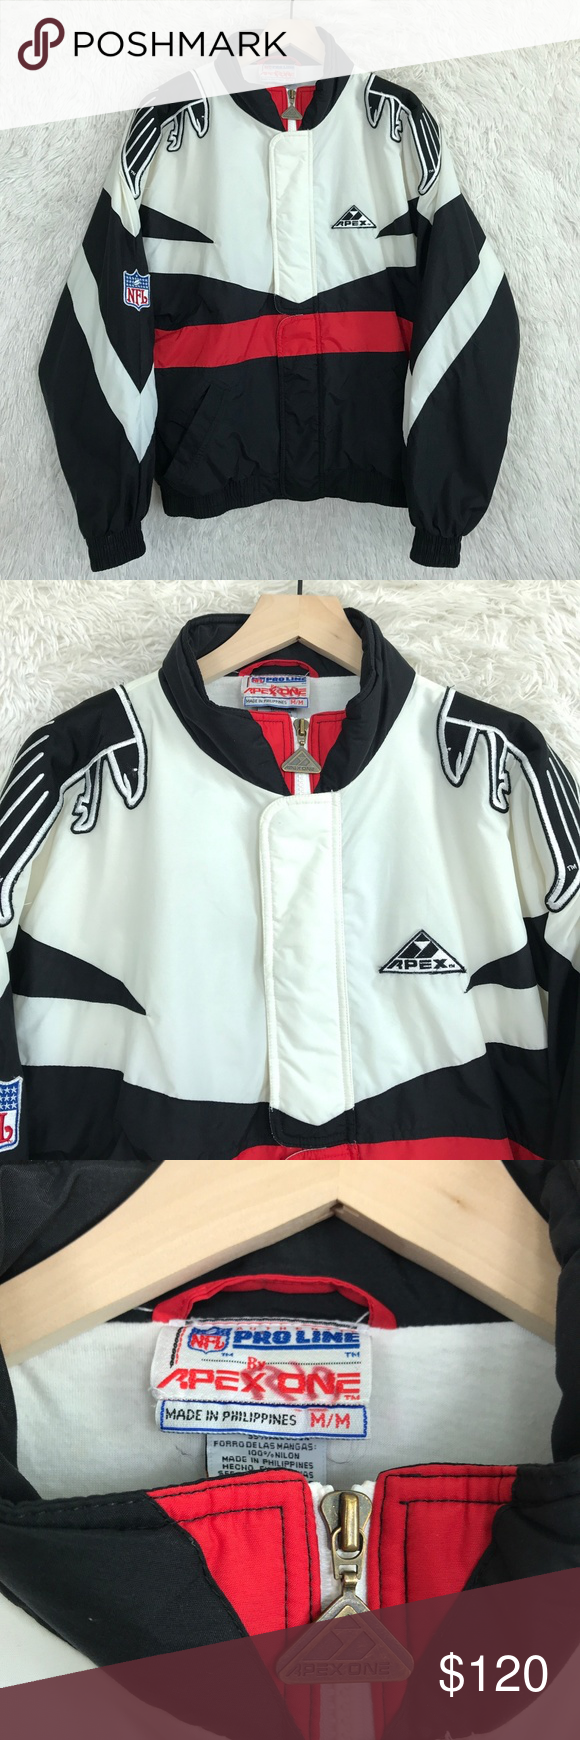 Atlanta Falcons Jacket Nfl Pro Line Vintage 90s Fashion Clothes Design Jackets